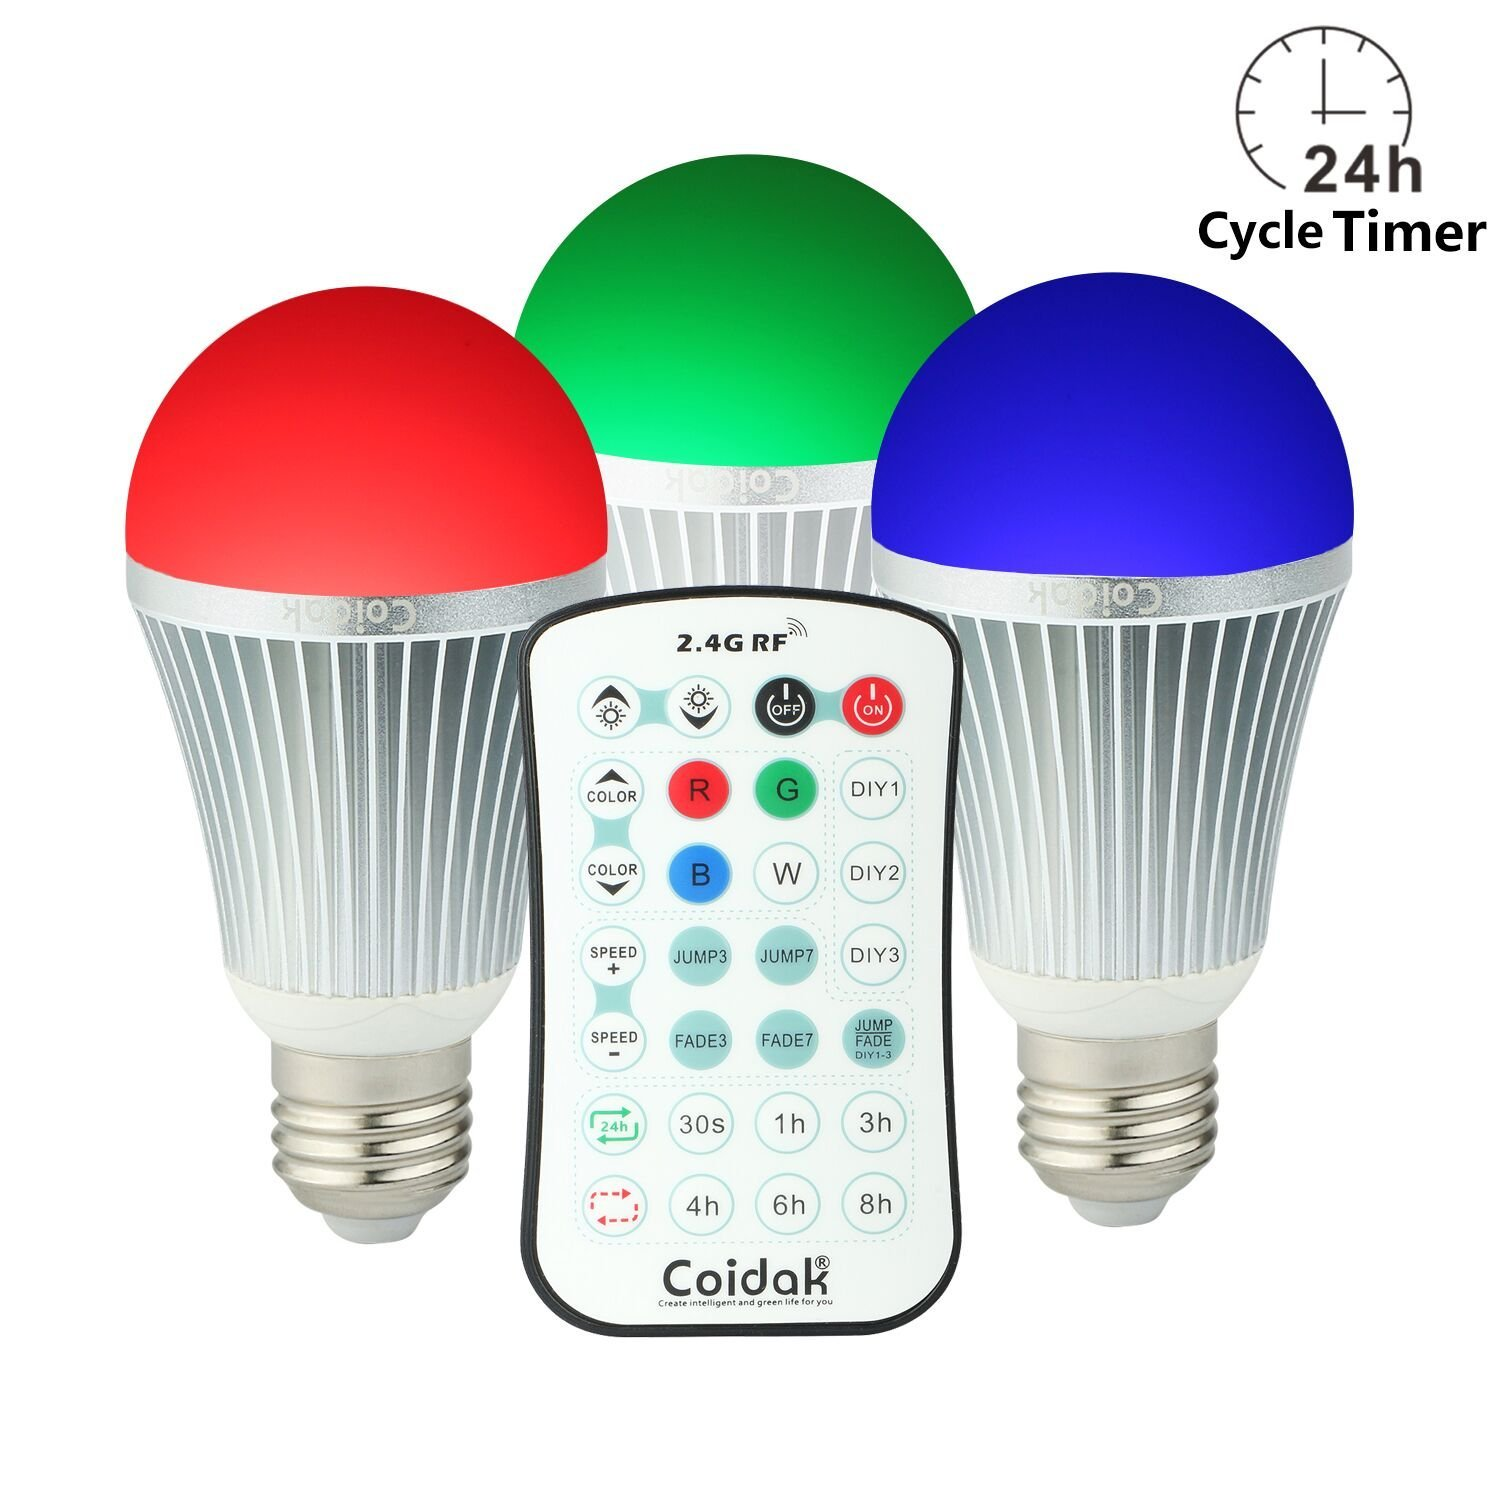 Coidak CO816 E26 Color changing LED Bulb with Timer & Sleep Function and Pure White Light, 2.4G Wireless Control Dimmable A19 Lamp with Remote, Aluminum Shell, 3-PACK